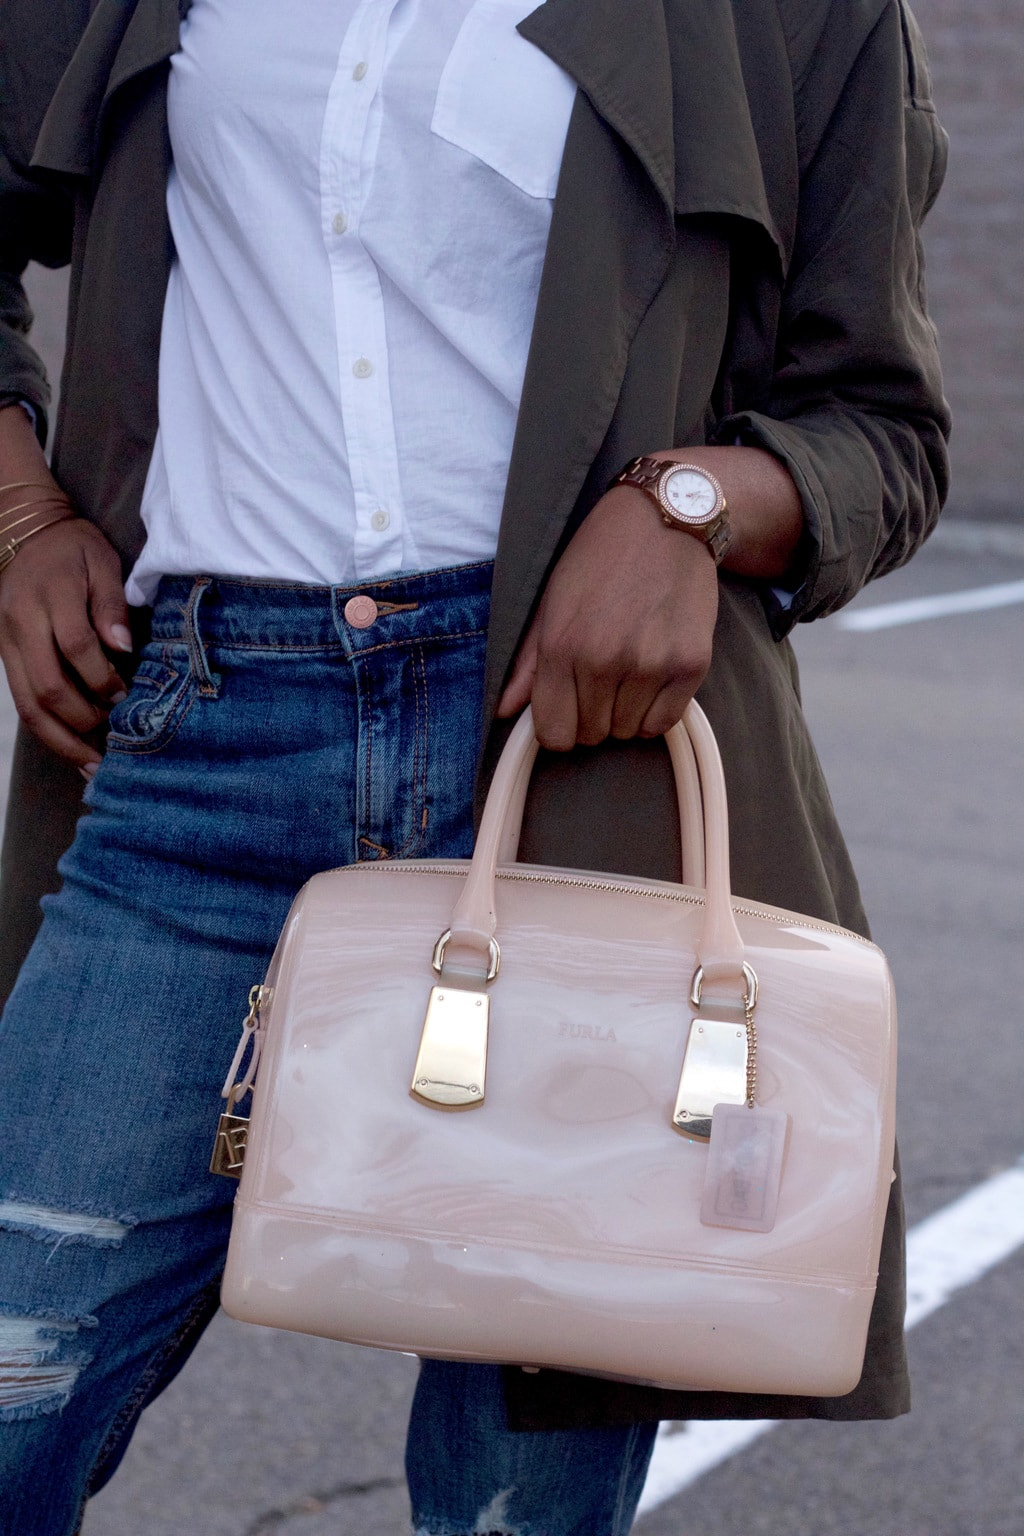 Ultra patent mini blush pink tote bag with gold details, worn with a copper watch.